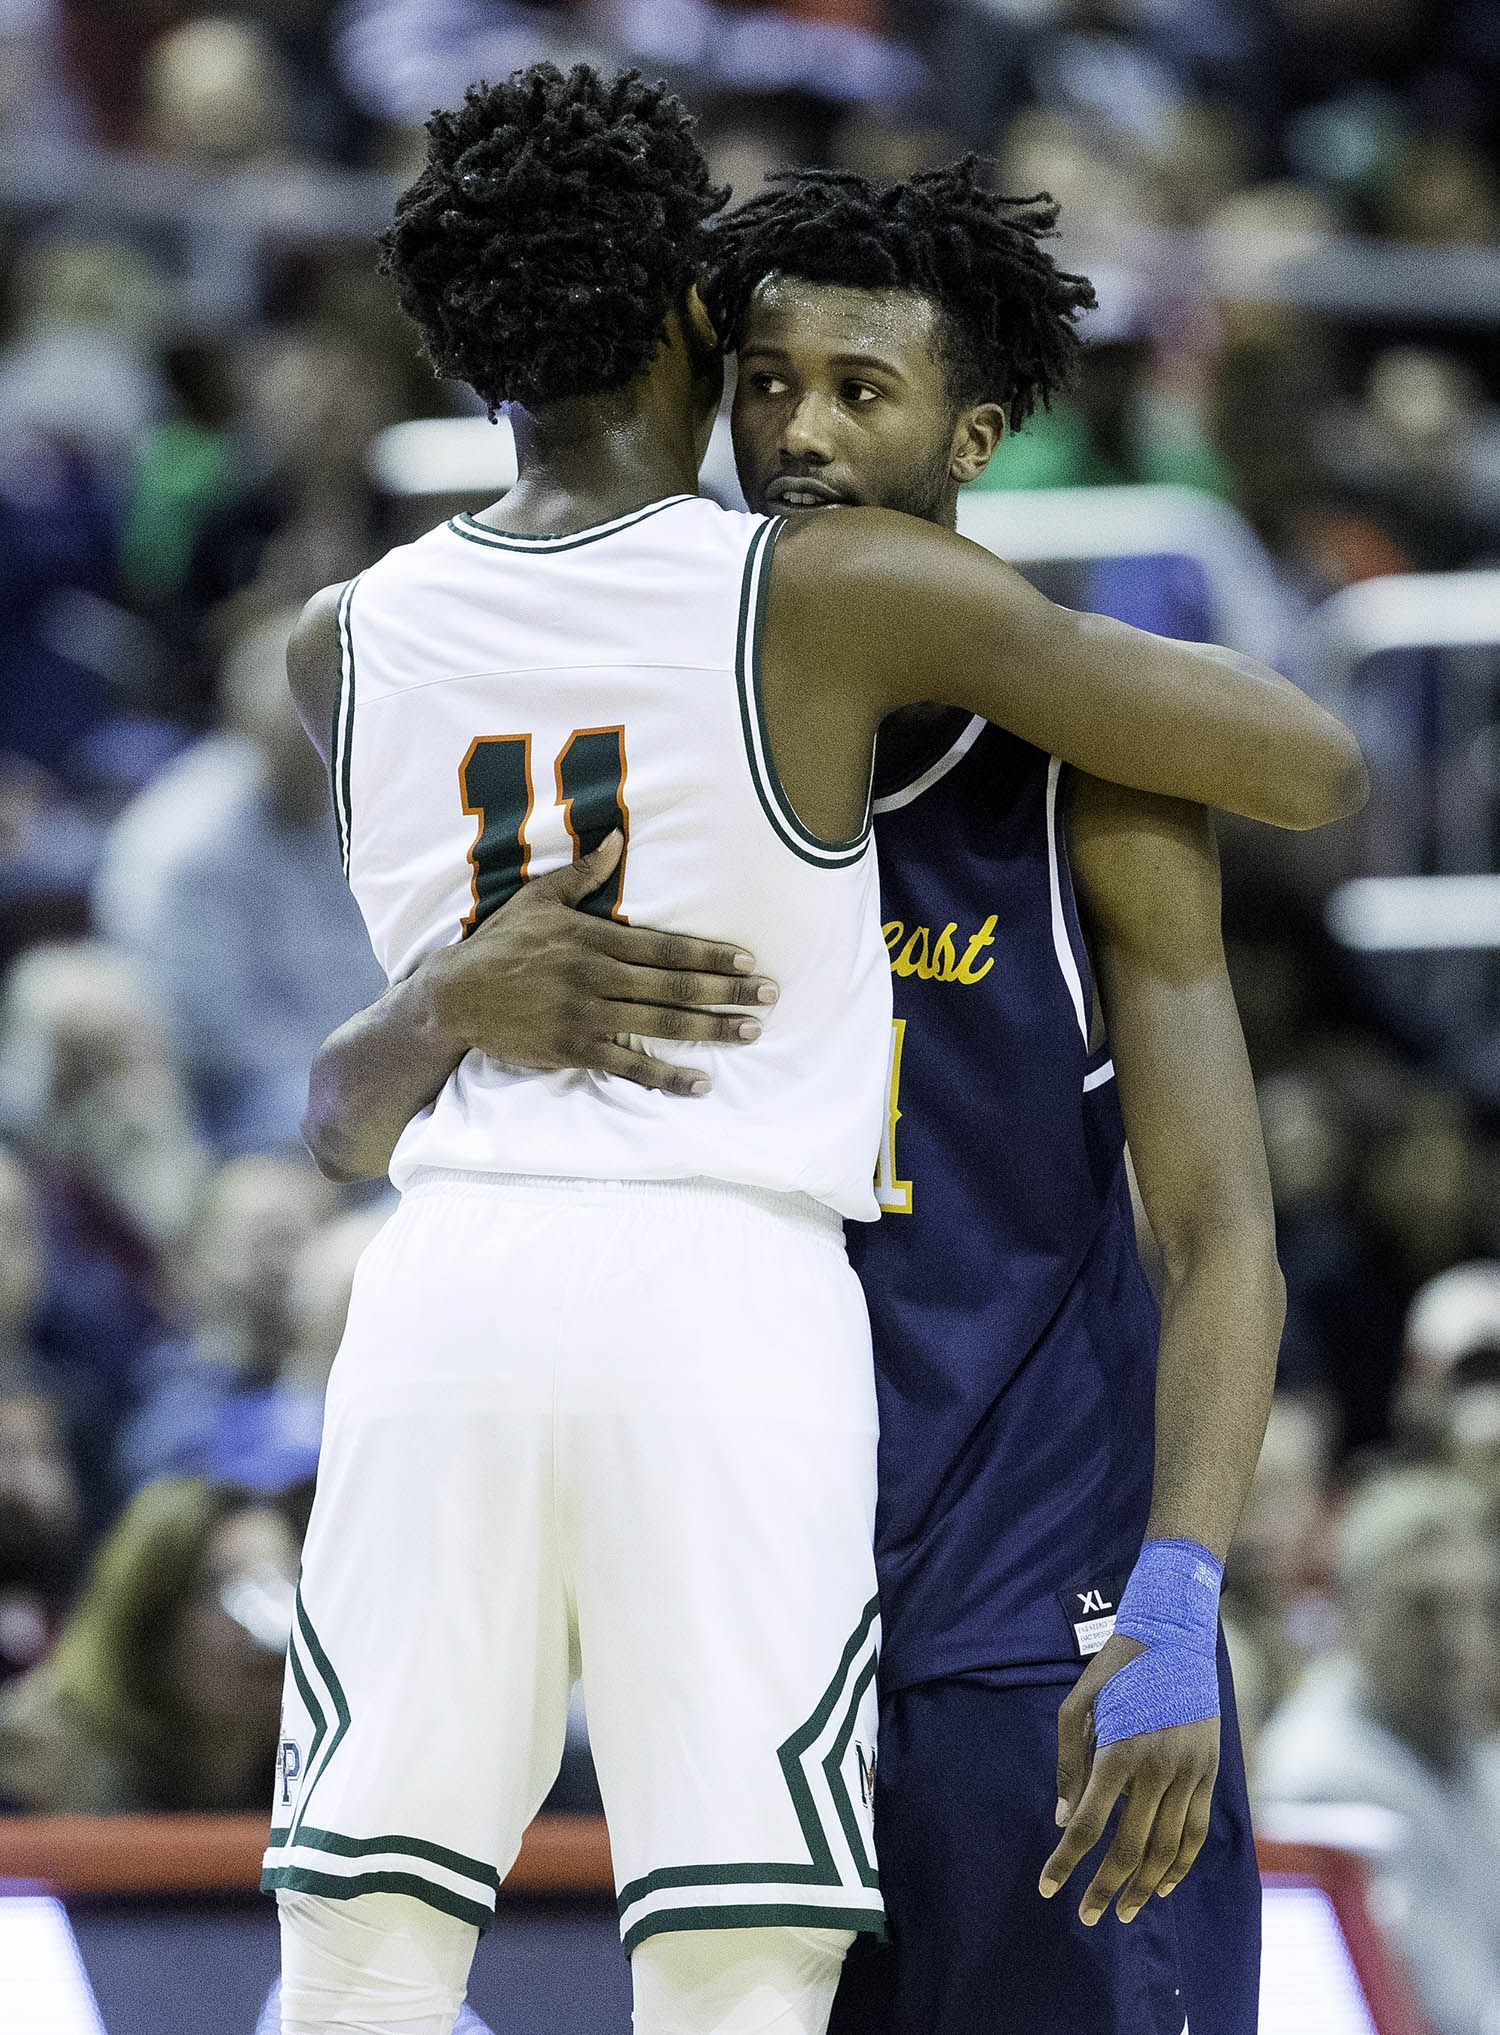 Morgan Park's Ayo Dosunmu hugs Southeast's Anthony Fairlee after Fairlee fouled out  during the 3A championship game at Carver Arena in Peoria, Ill., Saturday, March 17, 2018. [Ted Schurter/The State Journal-Register]